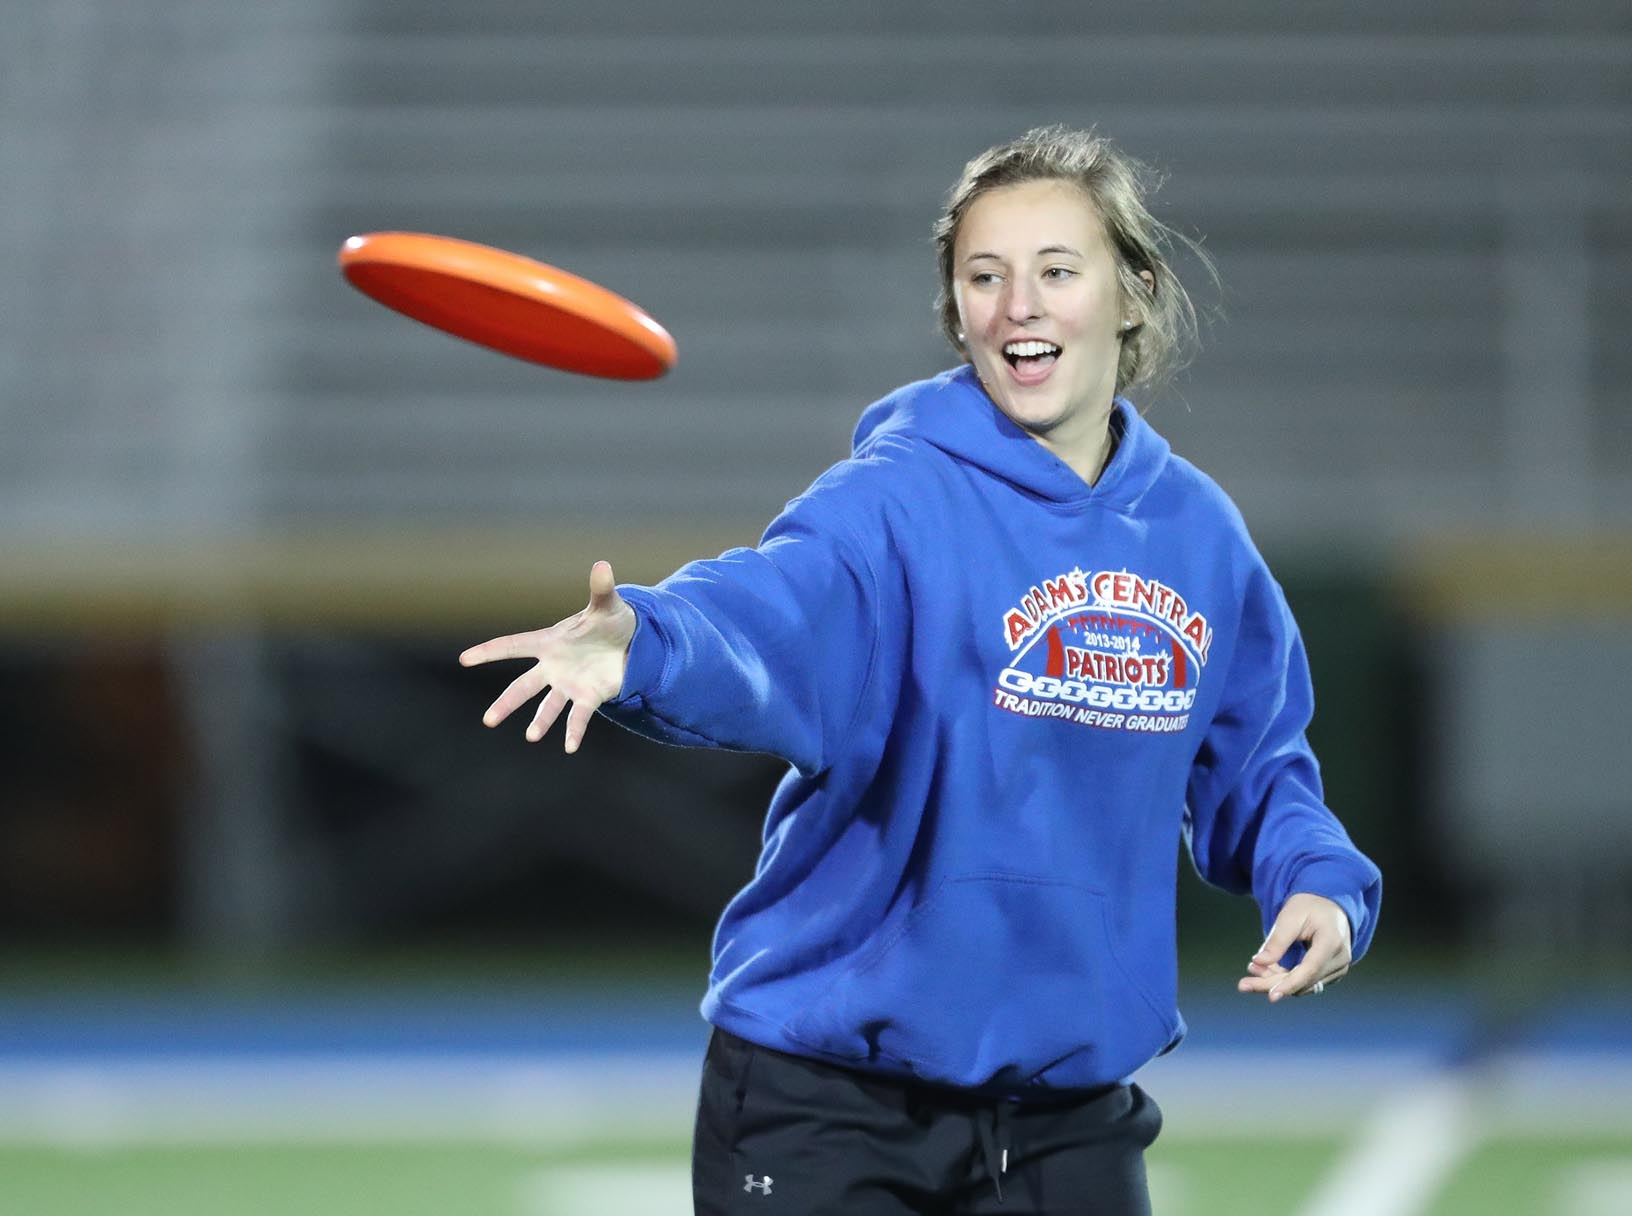 UNK Campus Recreation offers a number of nontraditional intramural sports and activities, including ultimate Frisbee, human foosball, esports, table tennis, cornhole and Spikeball.